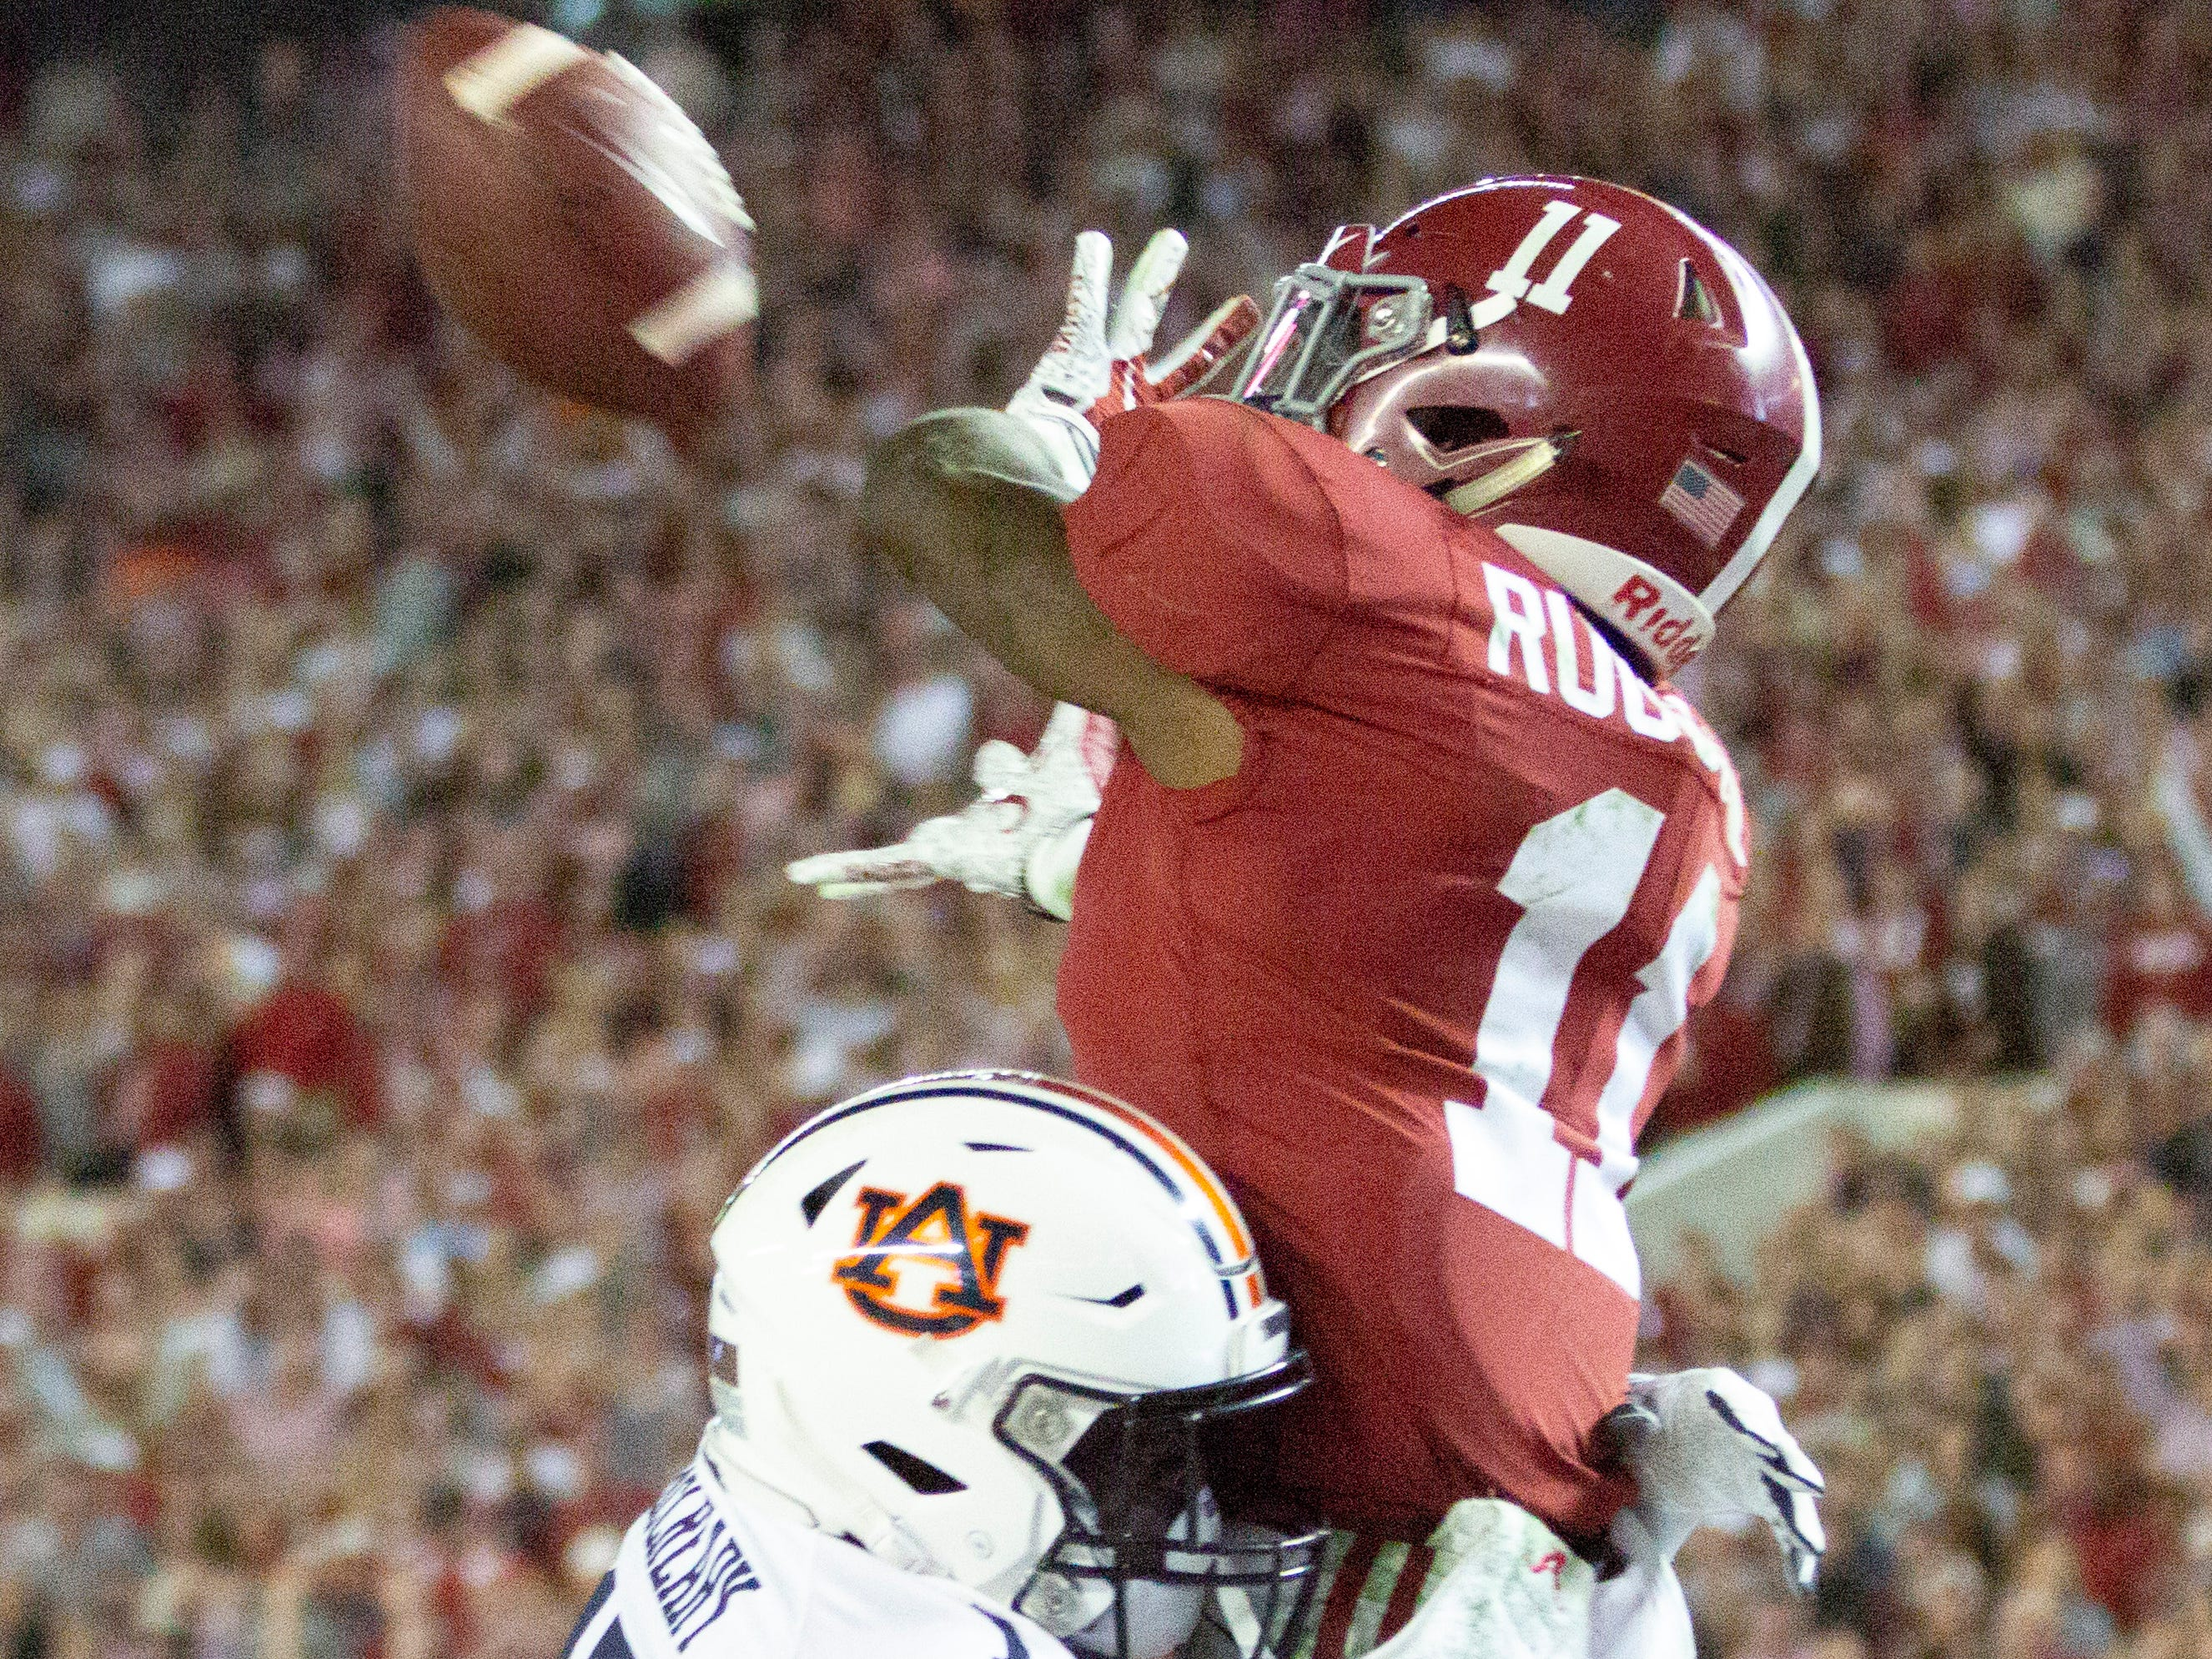 Alabama's Henry Ruggs III makes a catch in the fourth quarter despite Roger McCreary's best efforts.